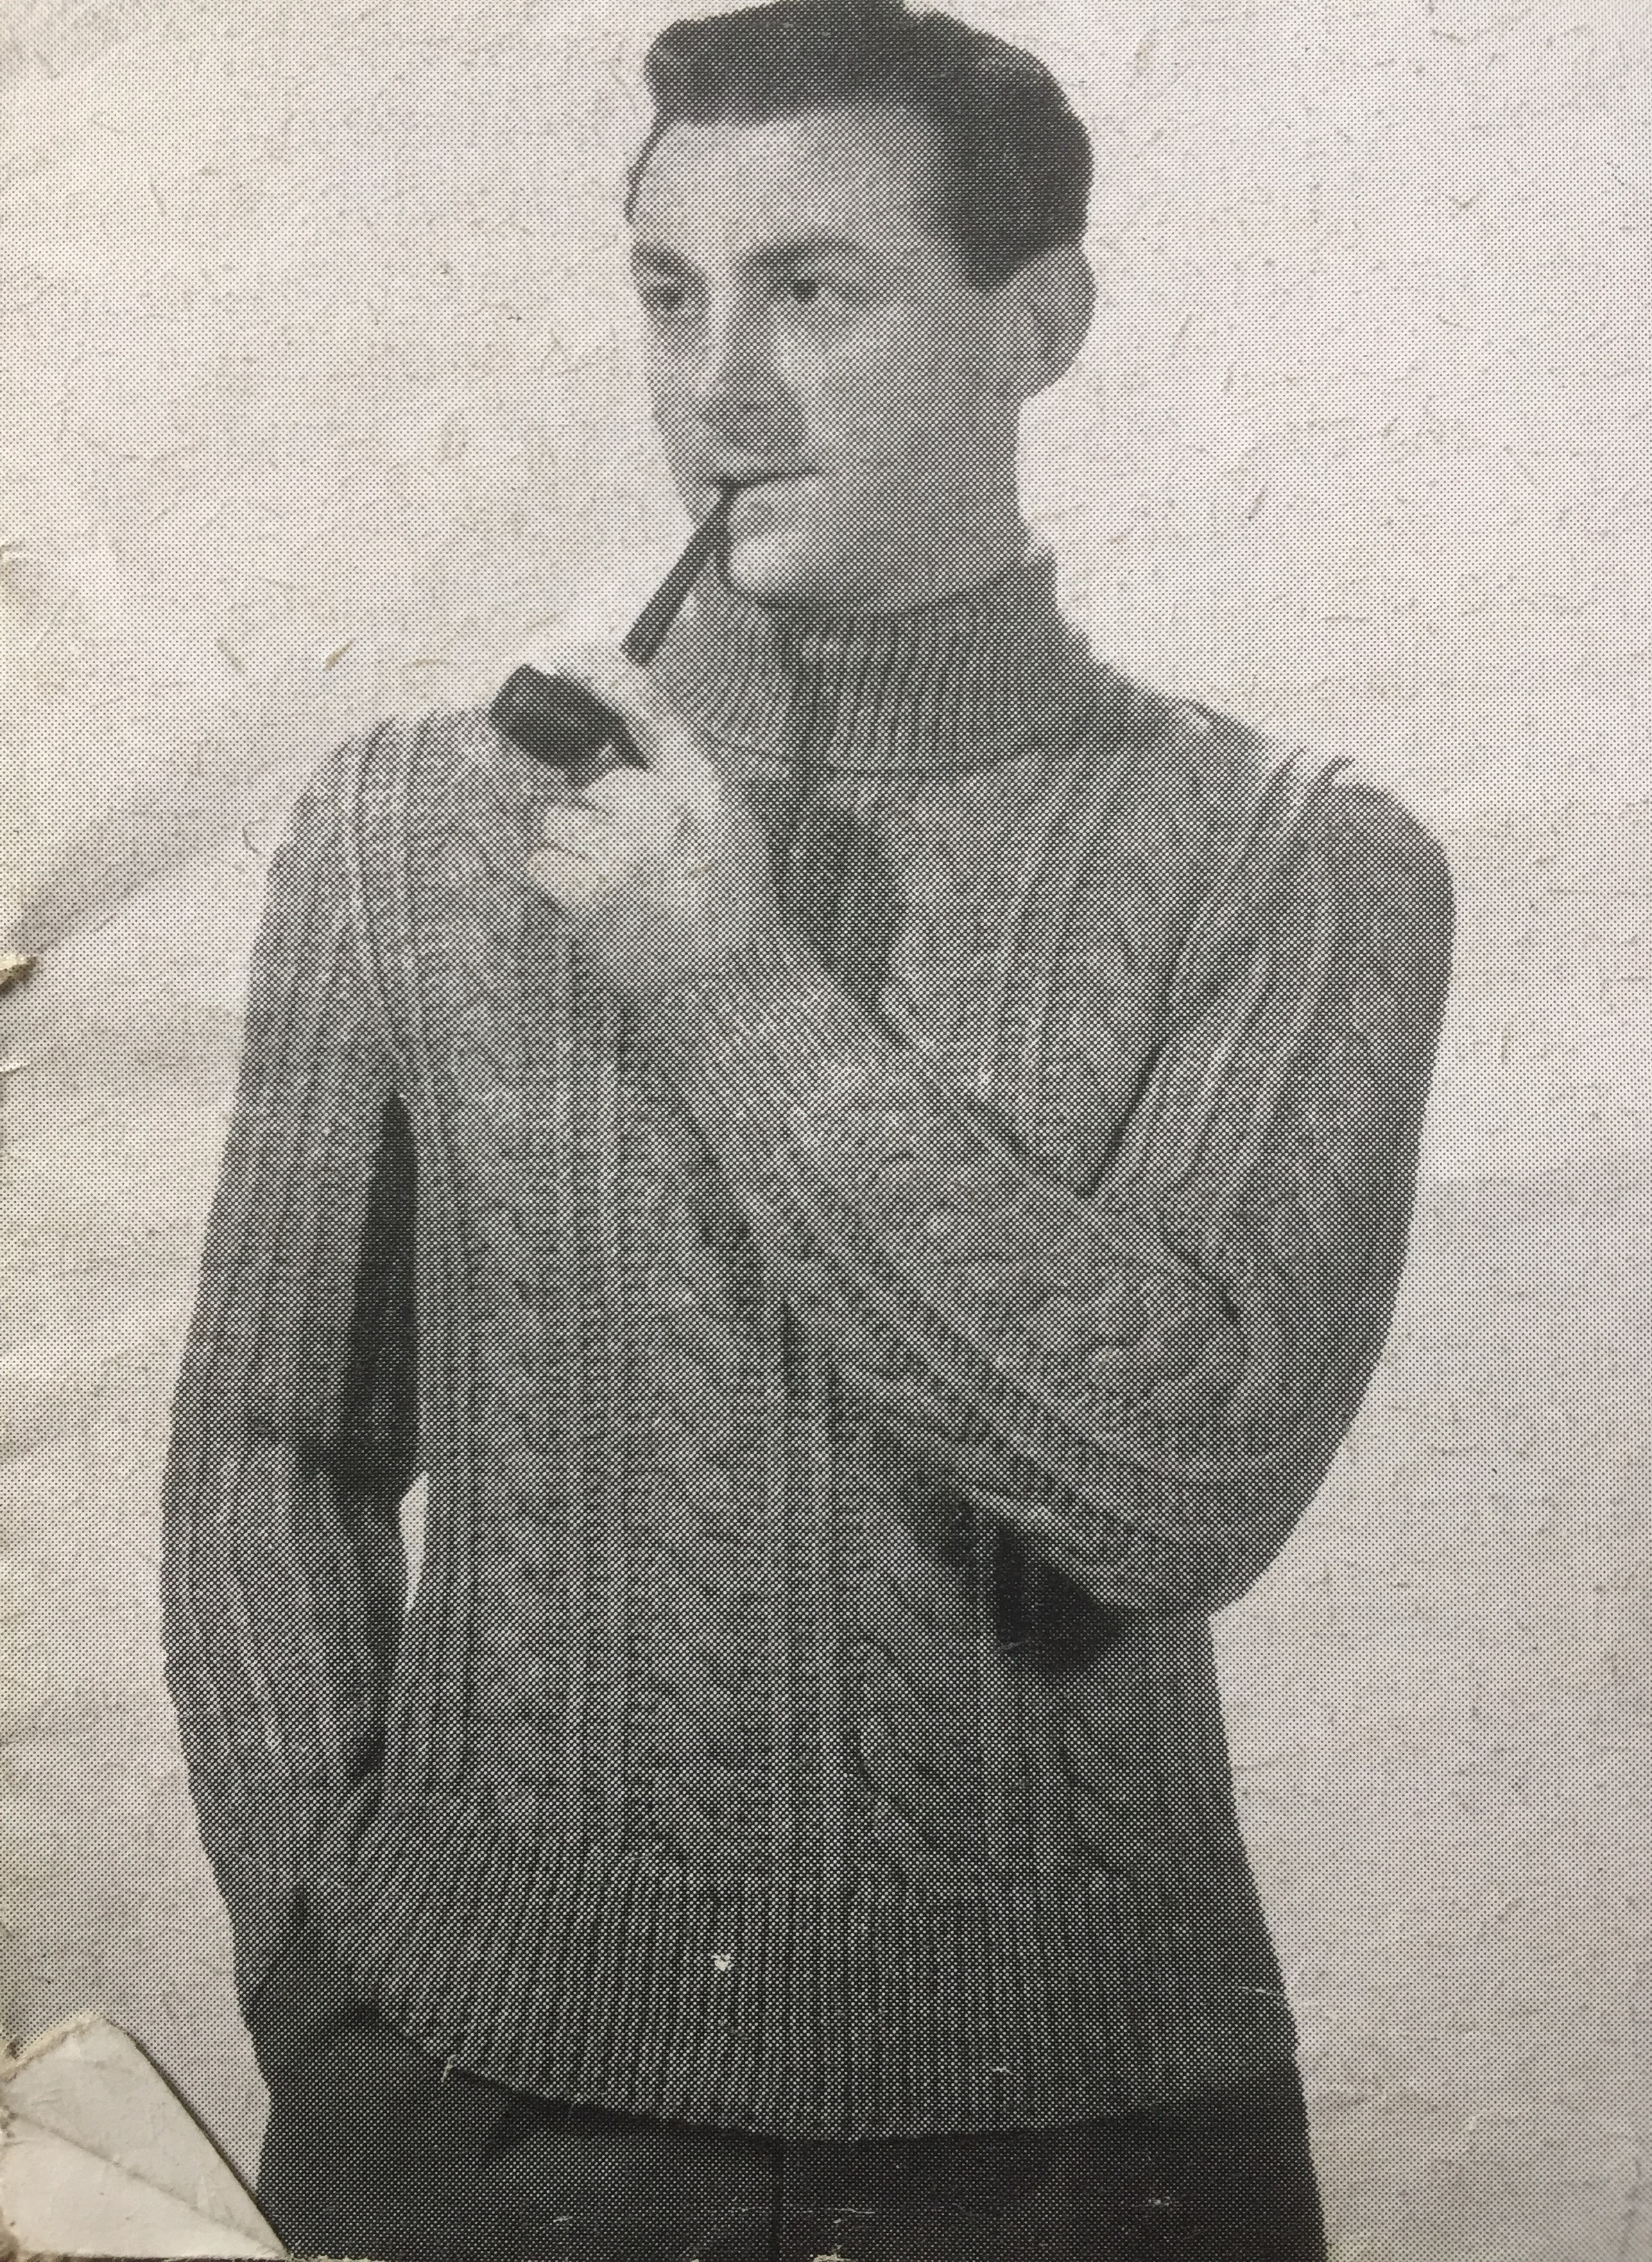 Vintage photo of male model with pipe